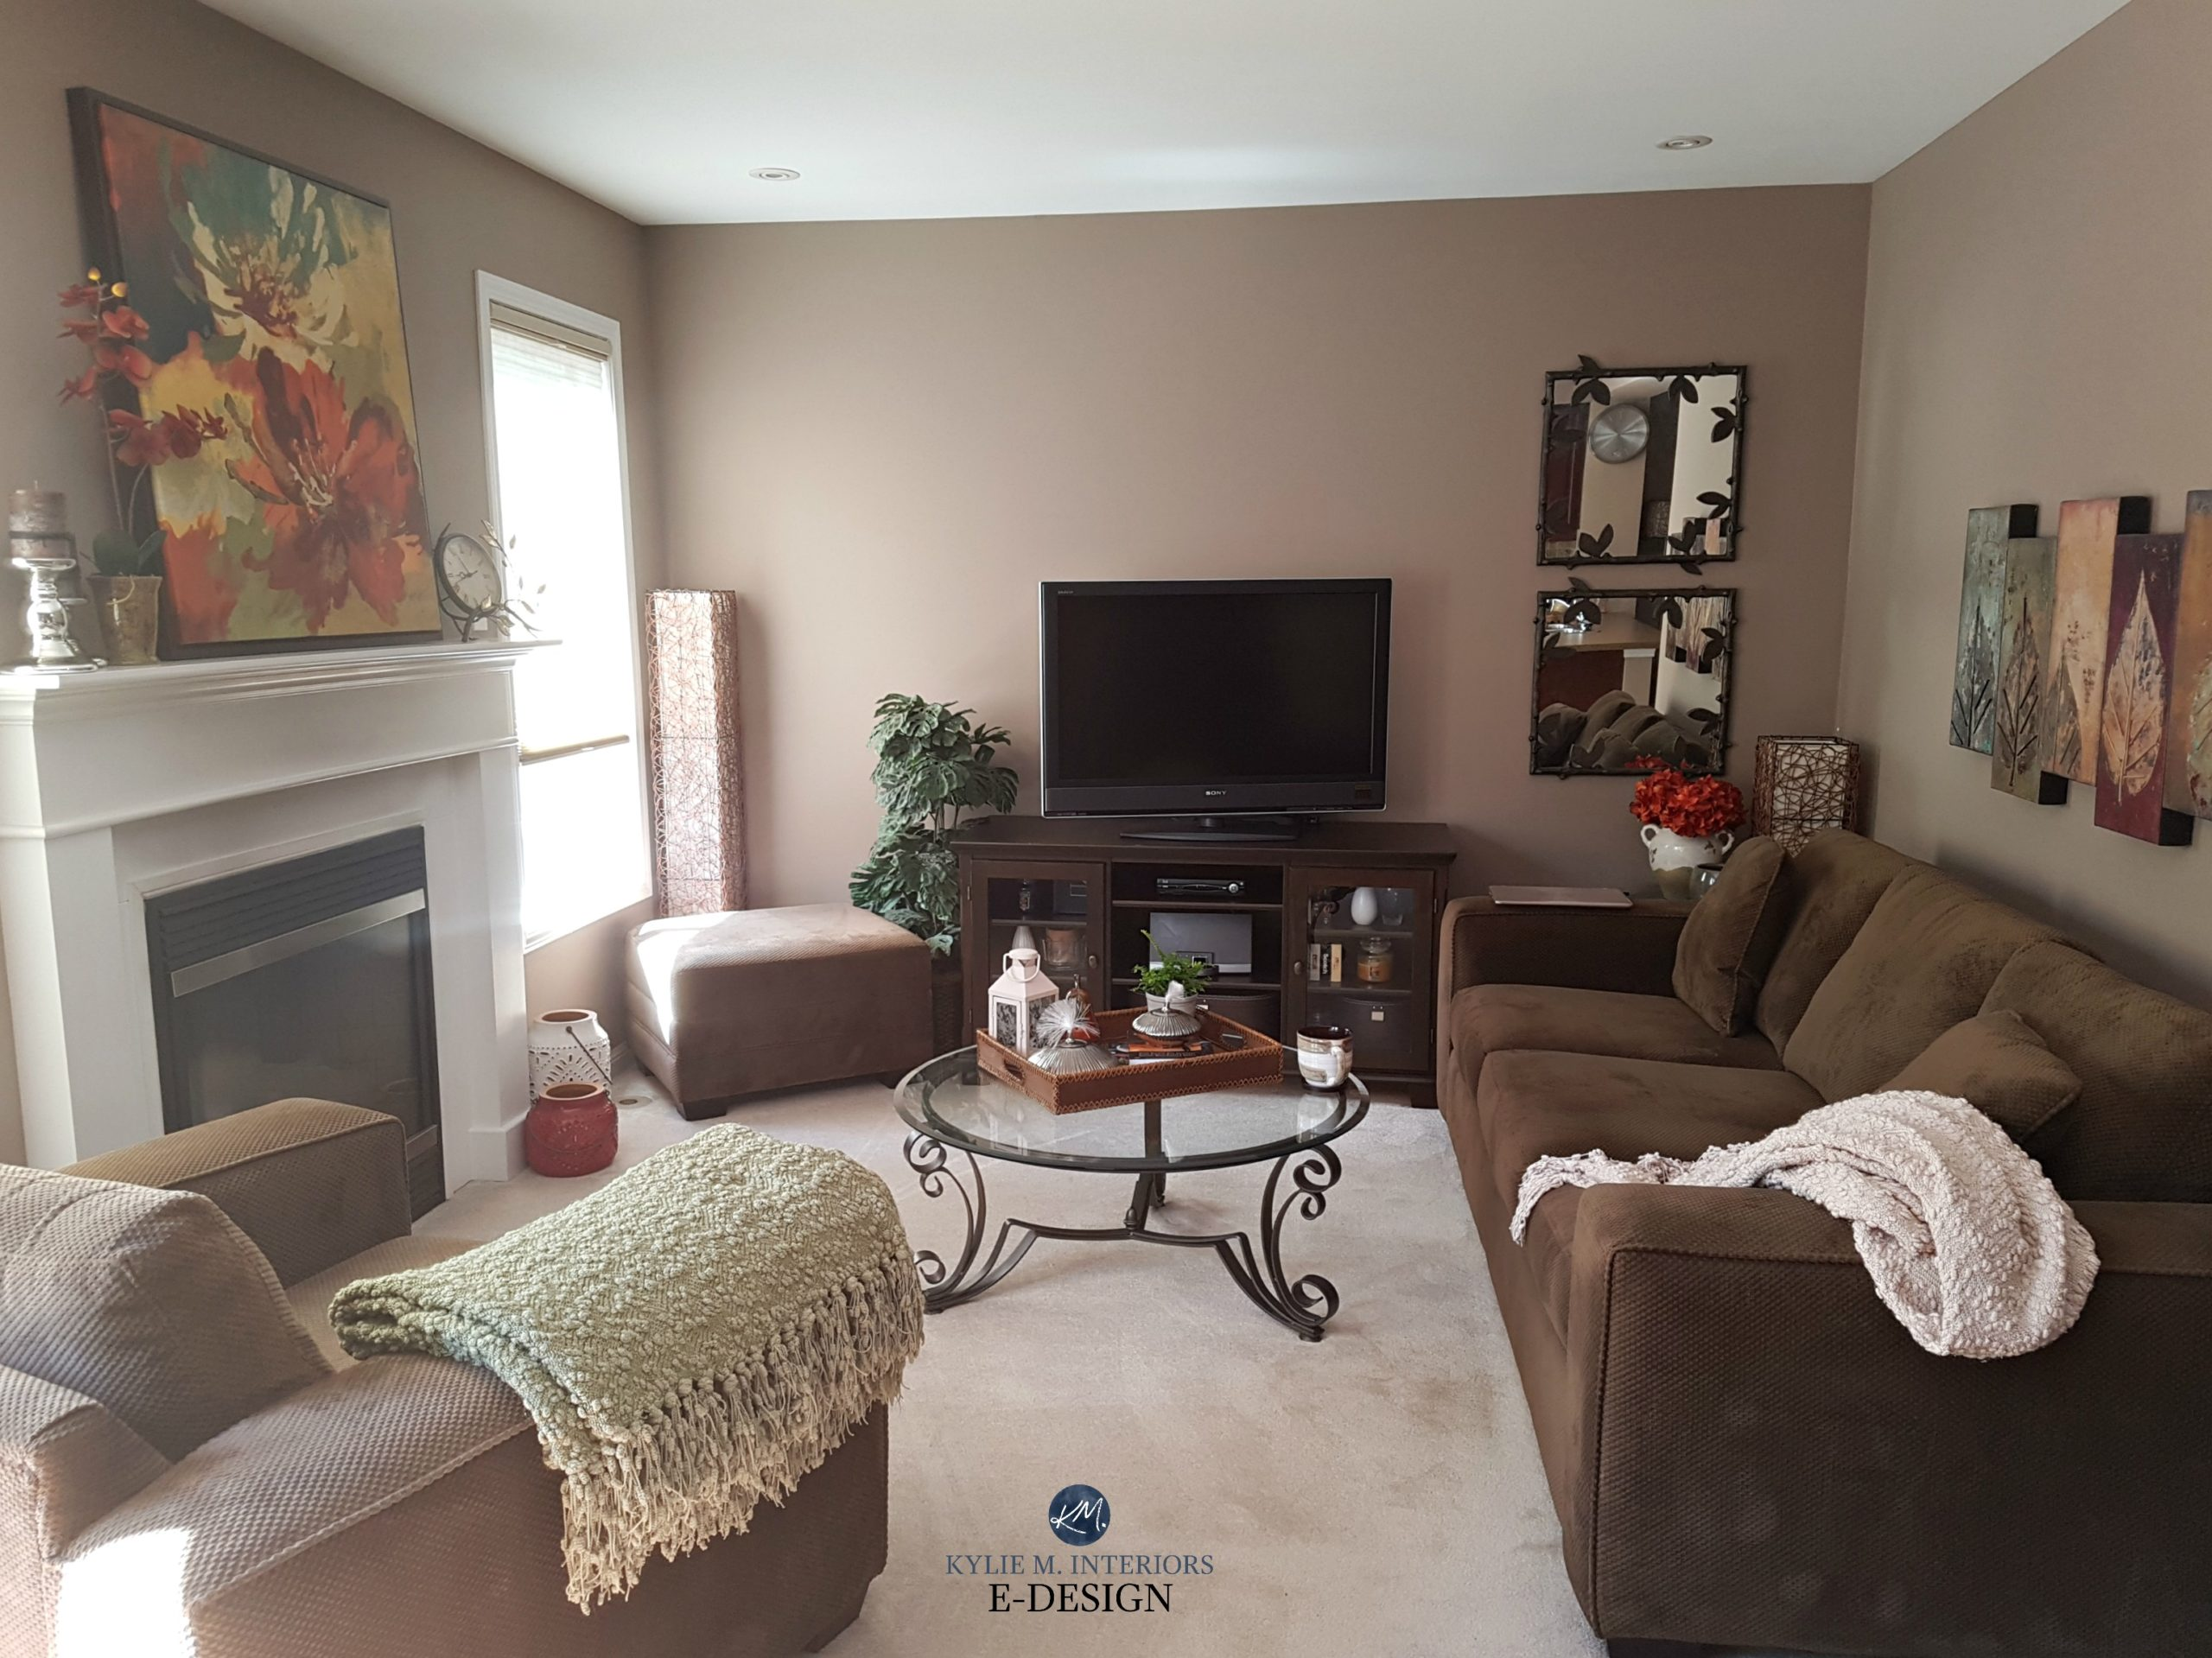 Benjamin Moore Weimaraner taupe paint colour in living